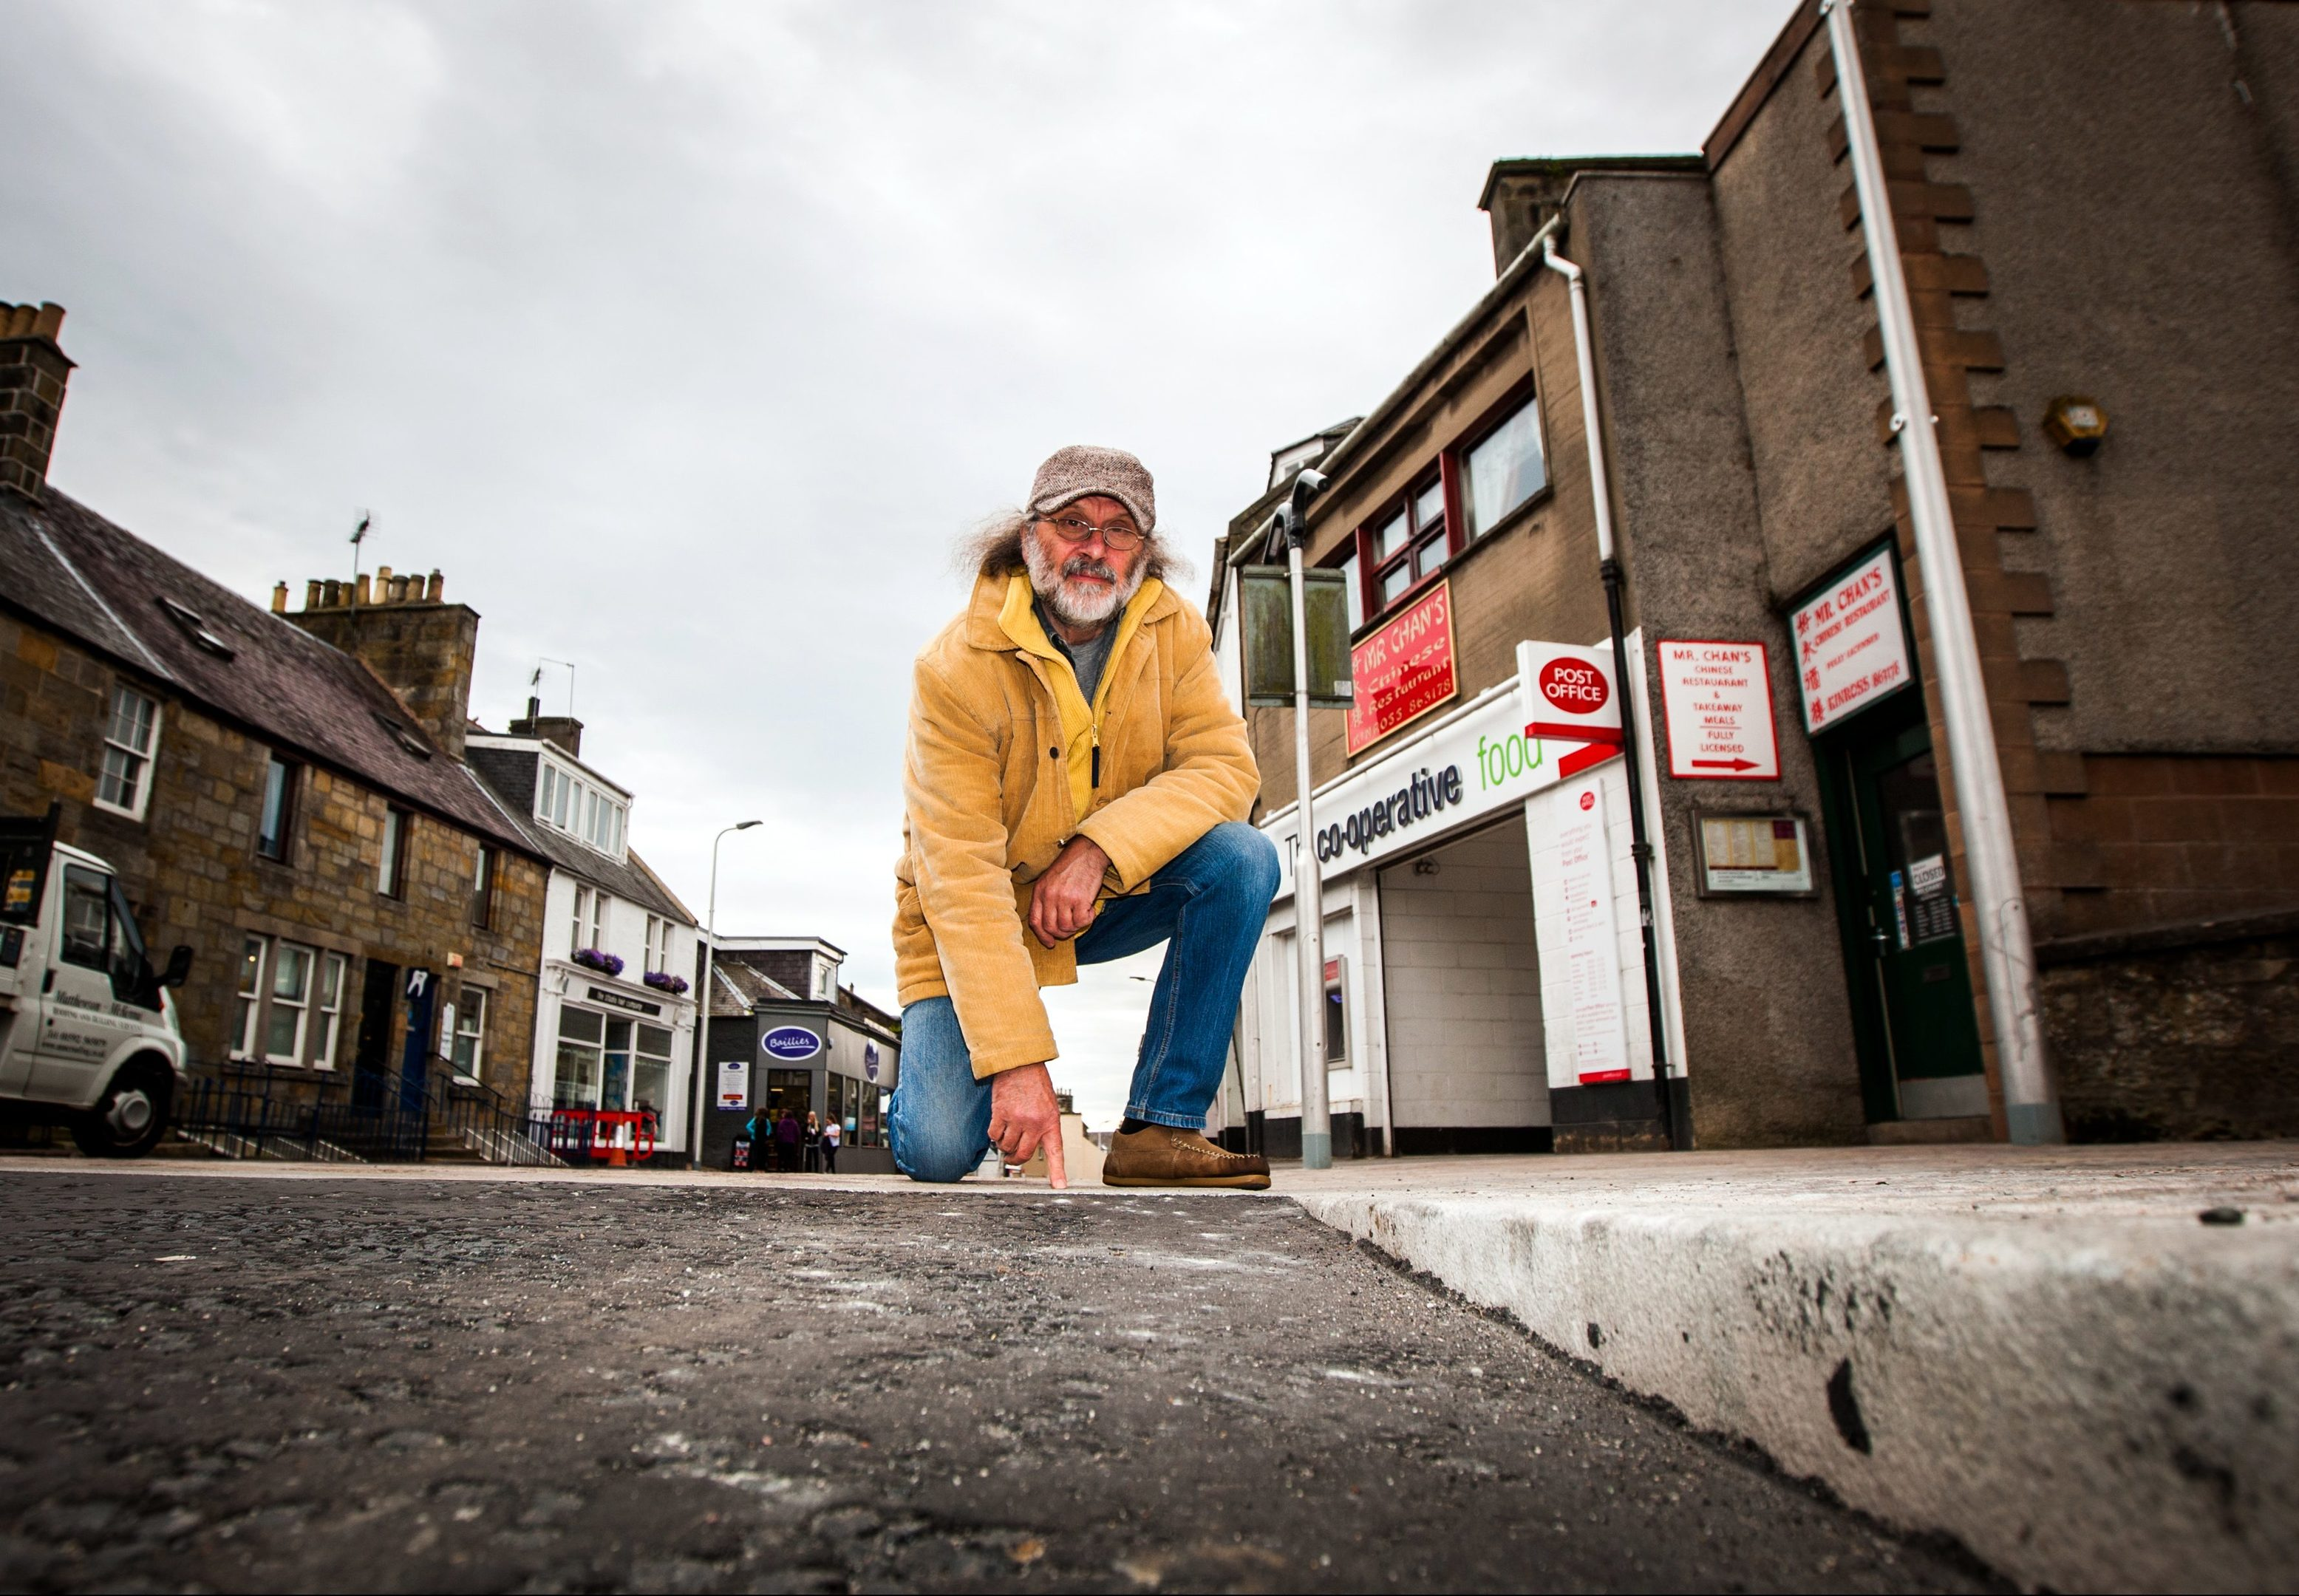 Ken Miles in the shared space area of Kinross High Street.